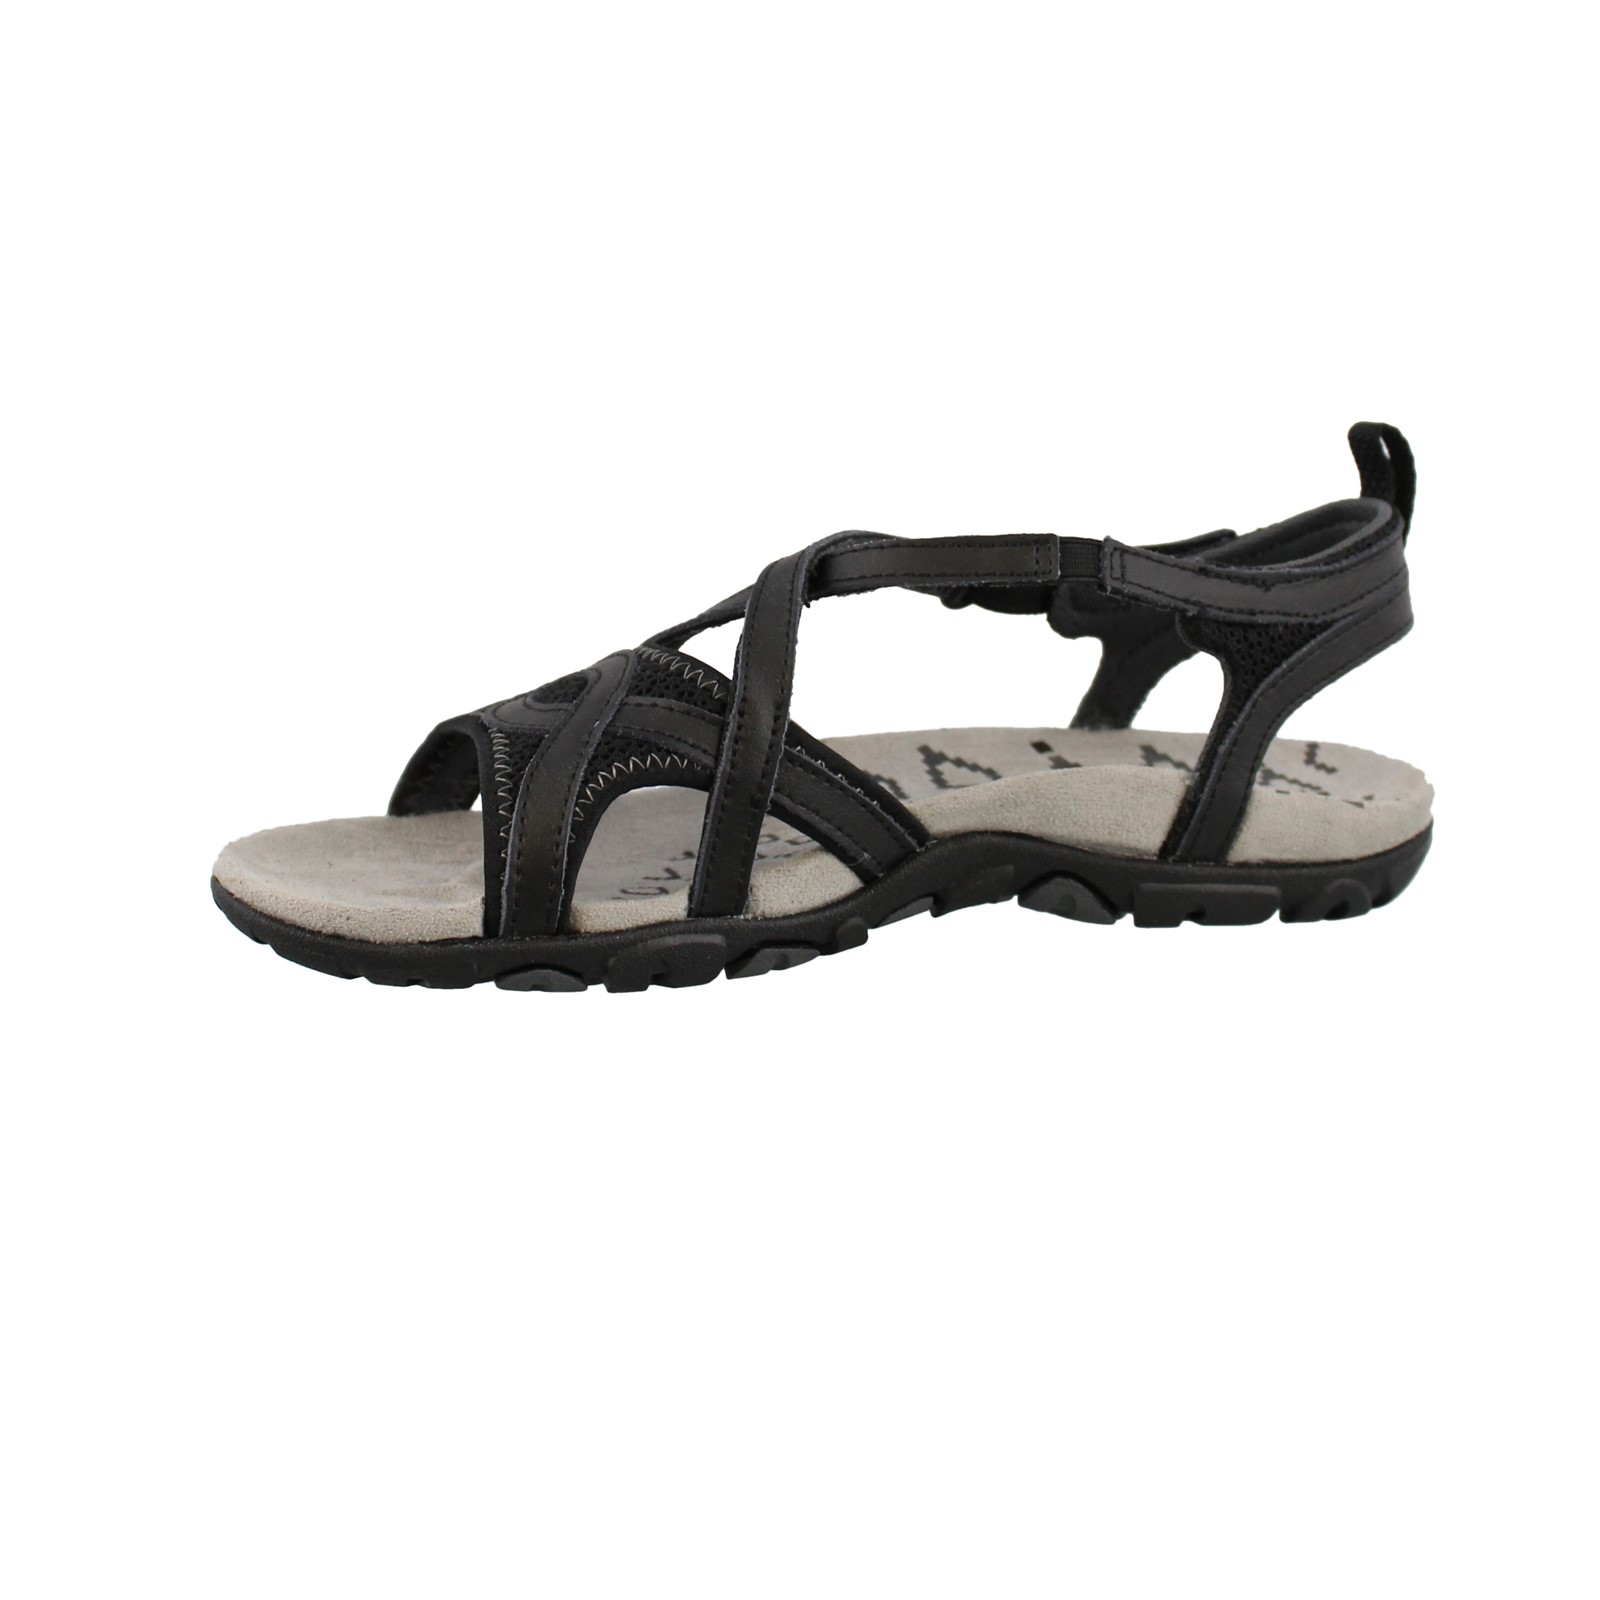 36b5ca168b9d Next. add to favorites. Women s Merrell